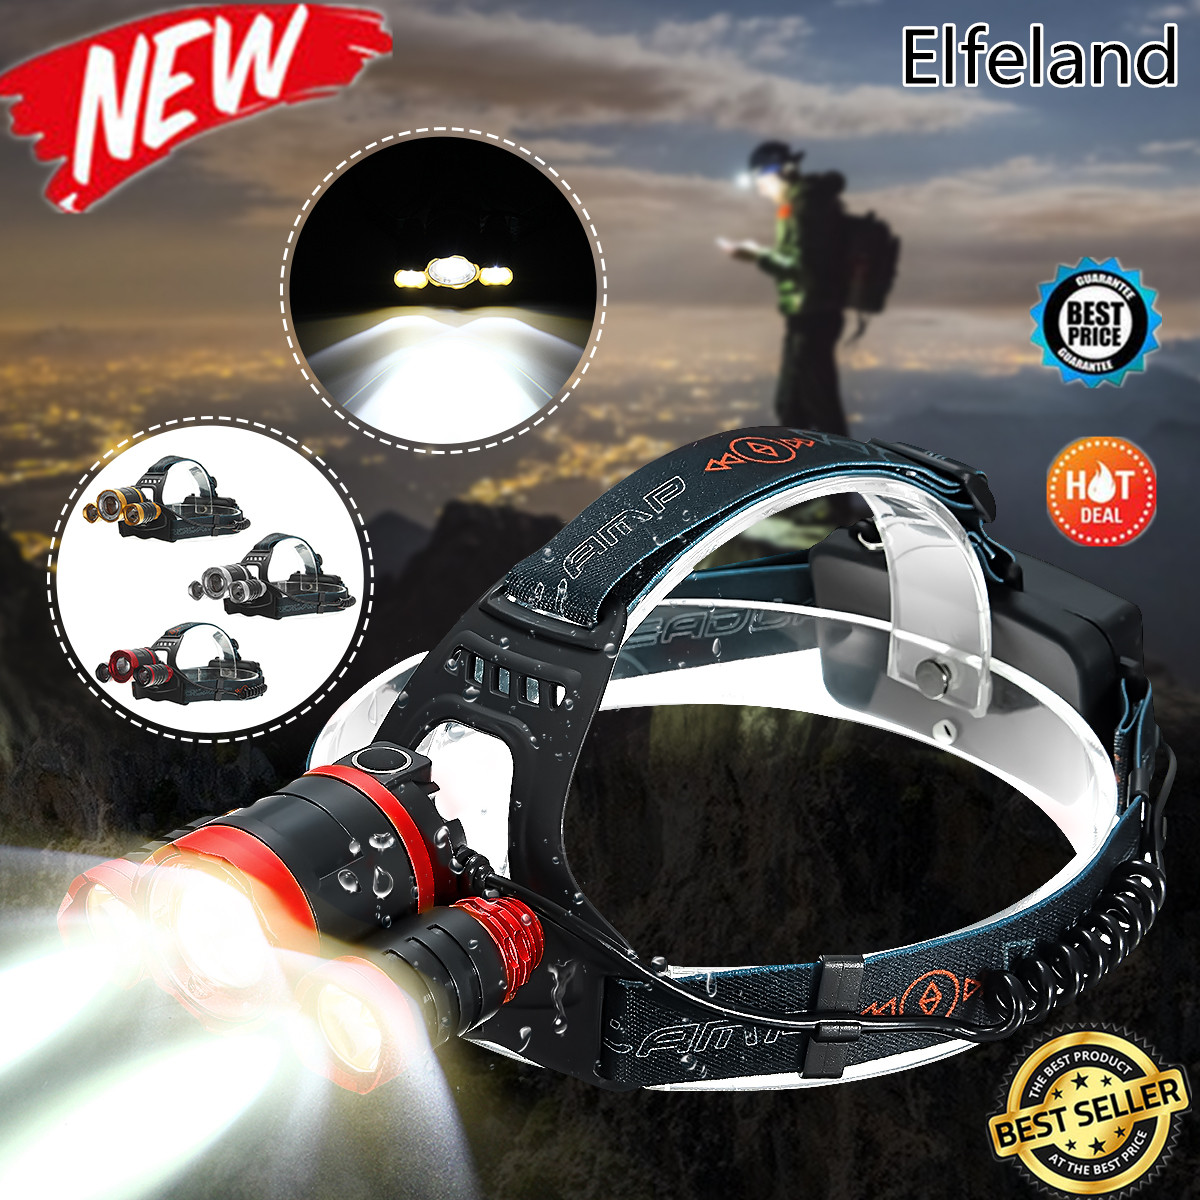 6000Lumens 3 x T6 Mechanical Telescopic Zoomable Focus Headlight Headlamp Head Lantern Tactical Lamp 4 Modes Waterproof For Camping Hiking